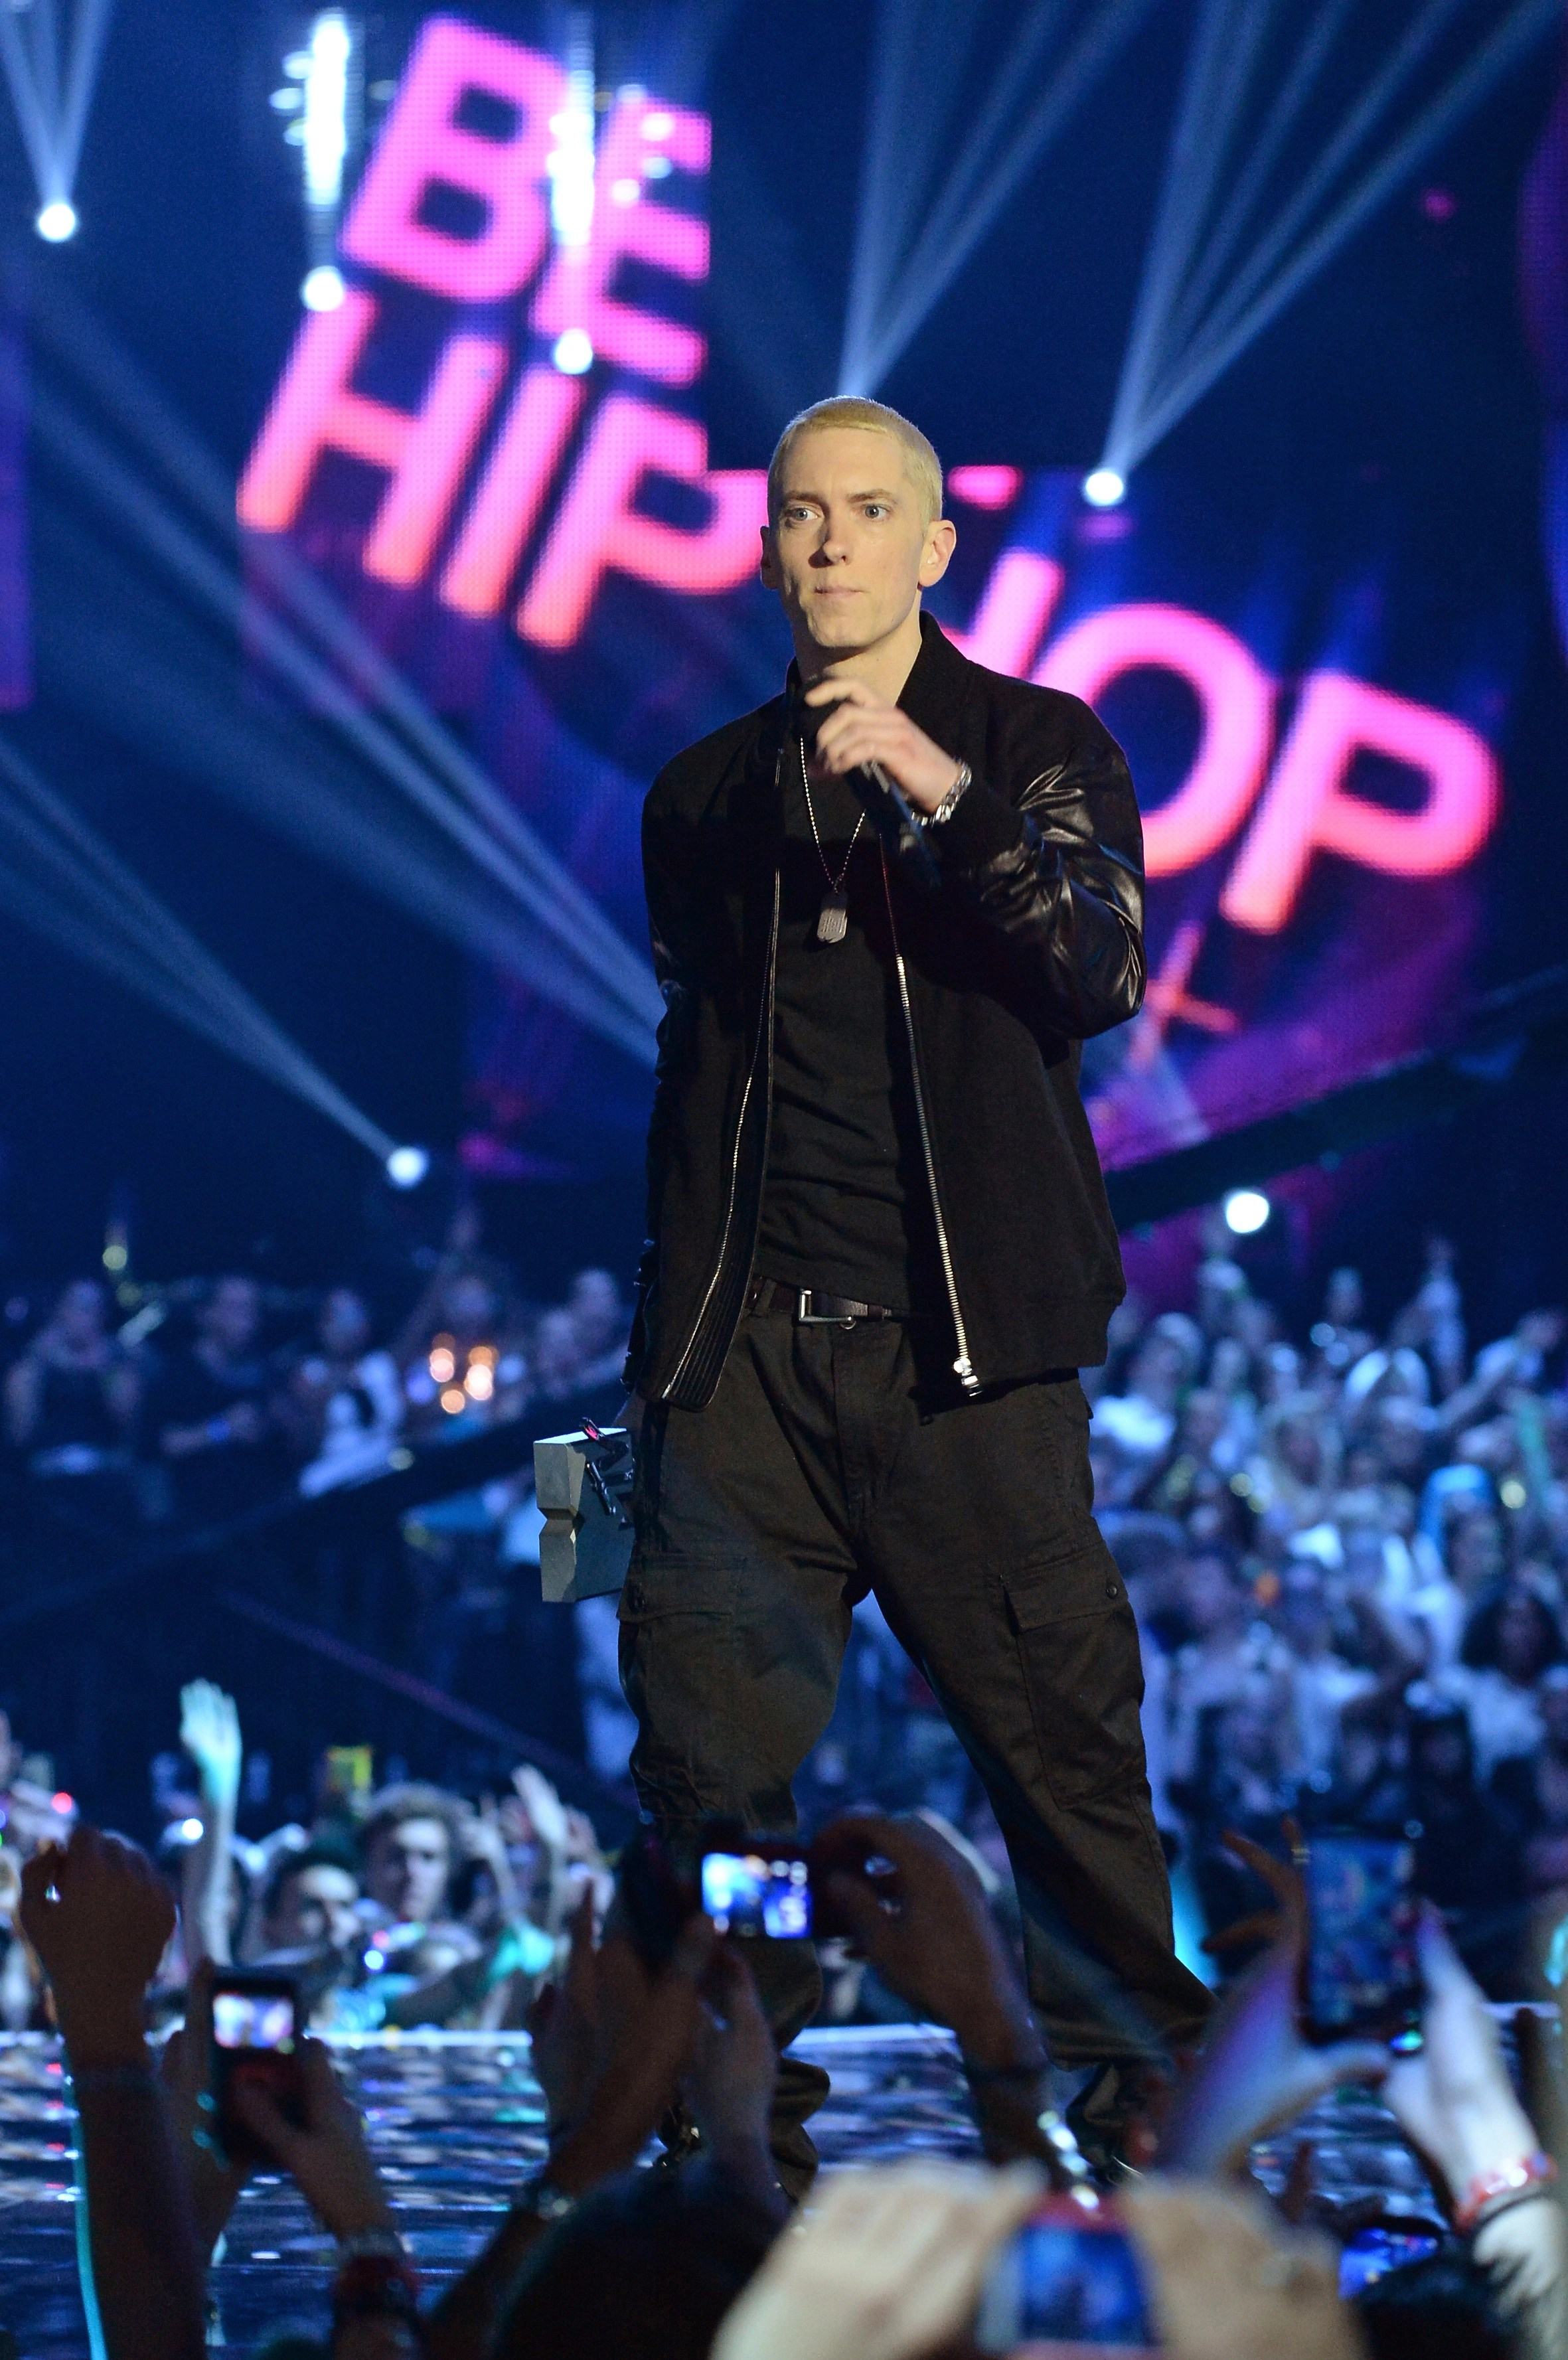 Eminem Reborn: The Second Coming of Marshall Mathers